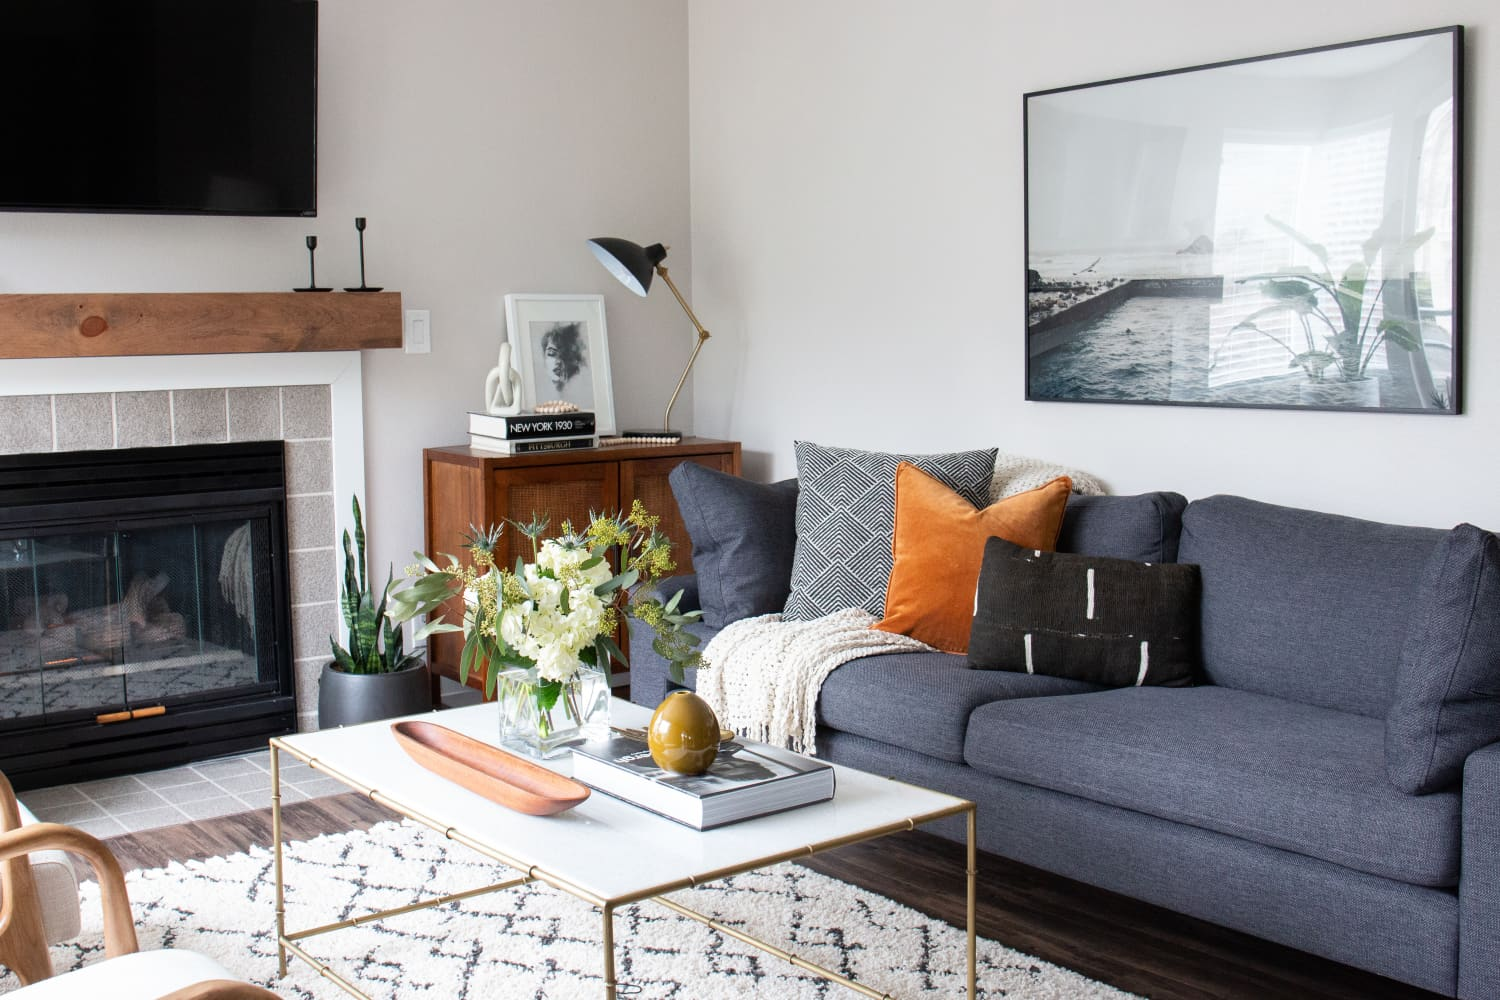 6 Easy Ways to Make Your Living Room Look More Expensive